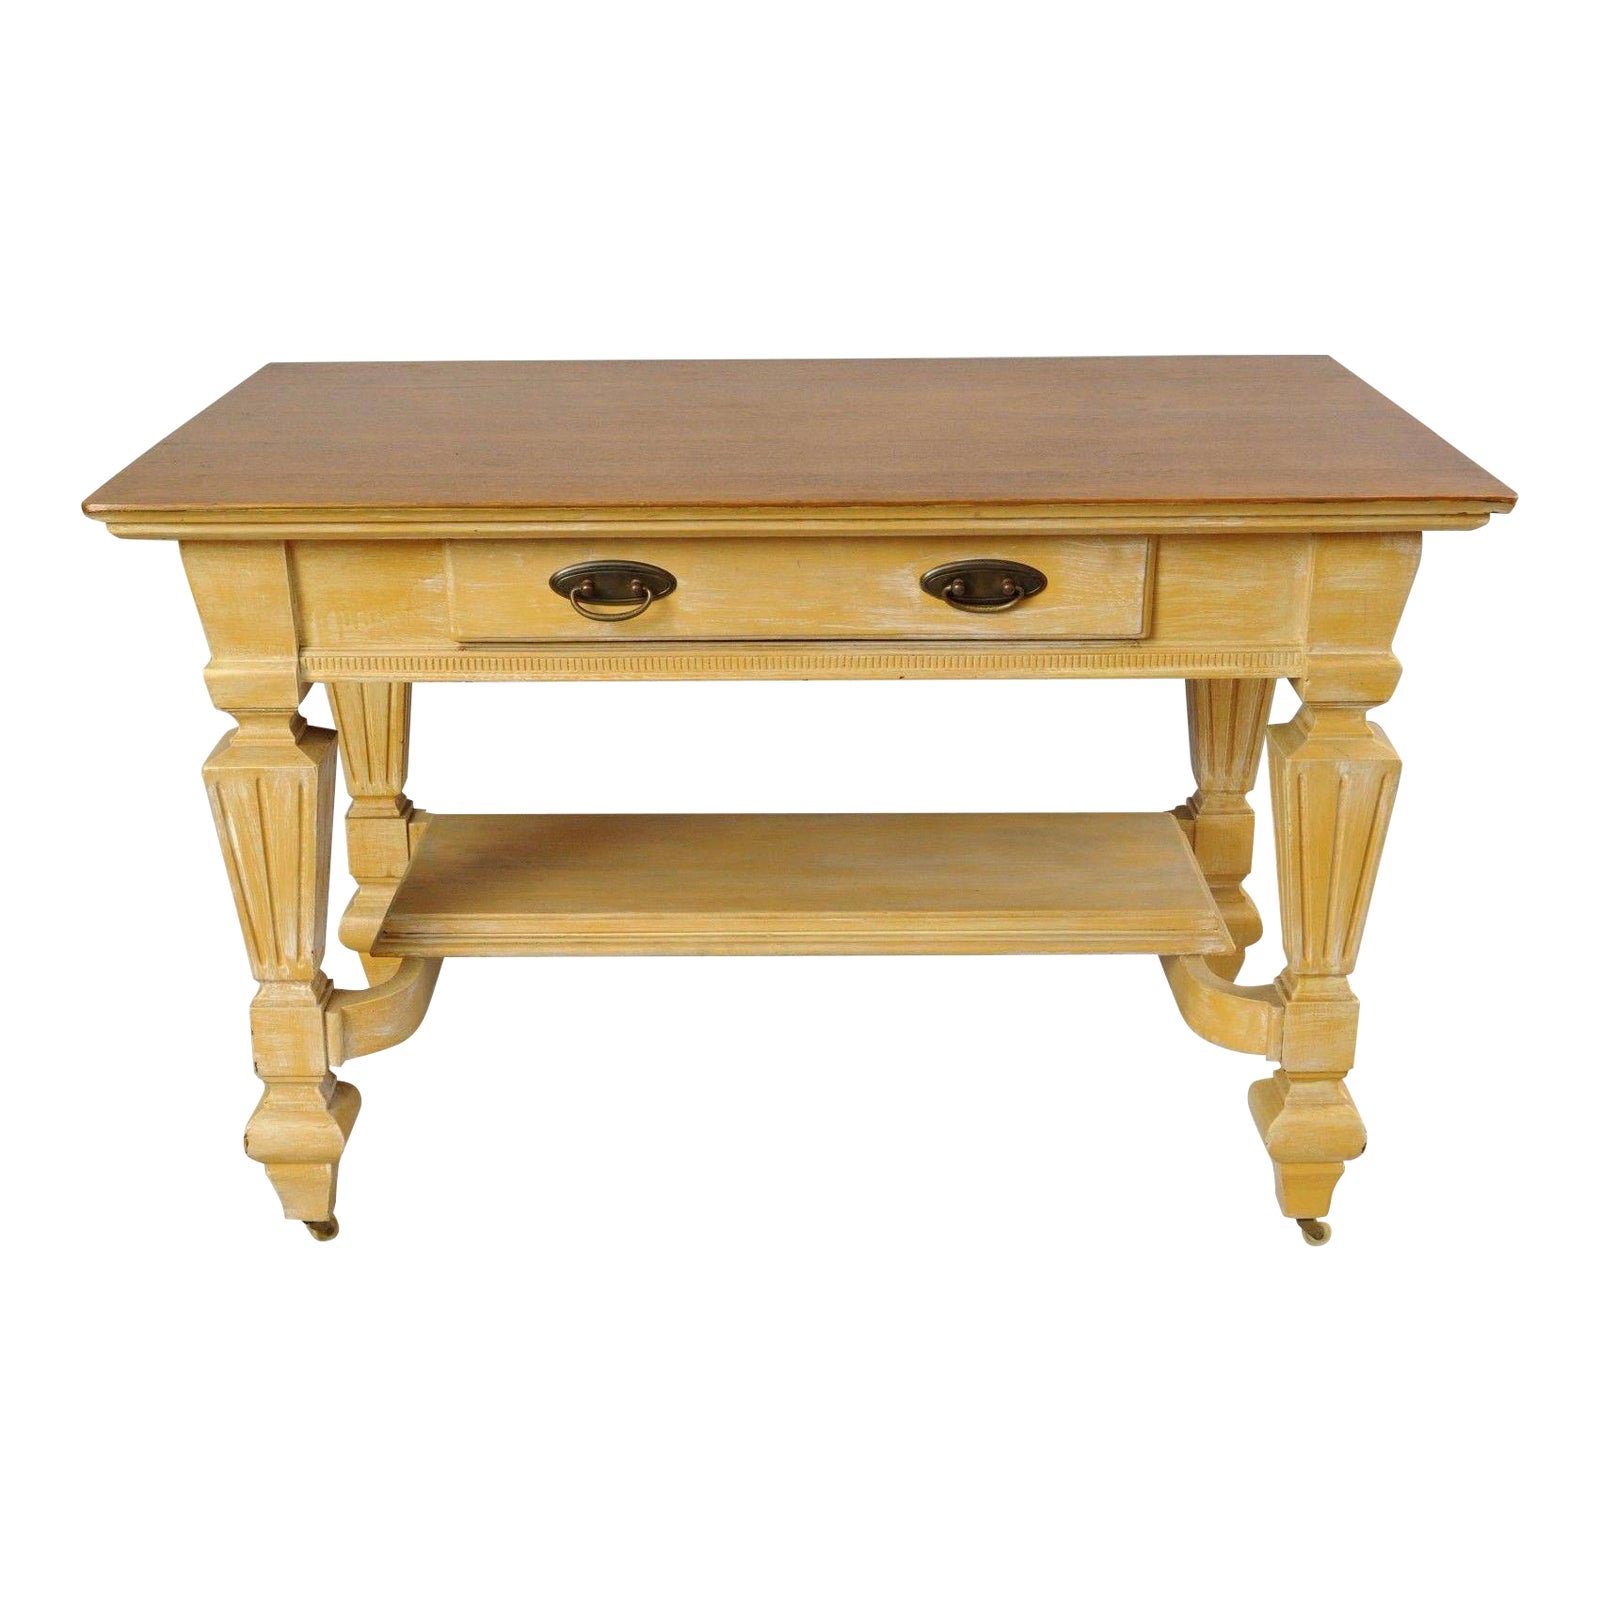 Antique Golden Oak Desk Hall Table Console Mission Arts Crafts One Drawer Chairish